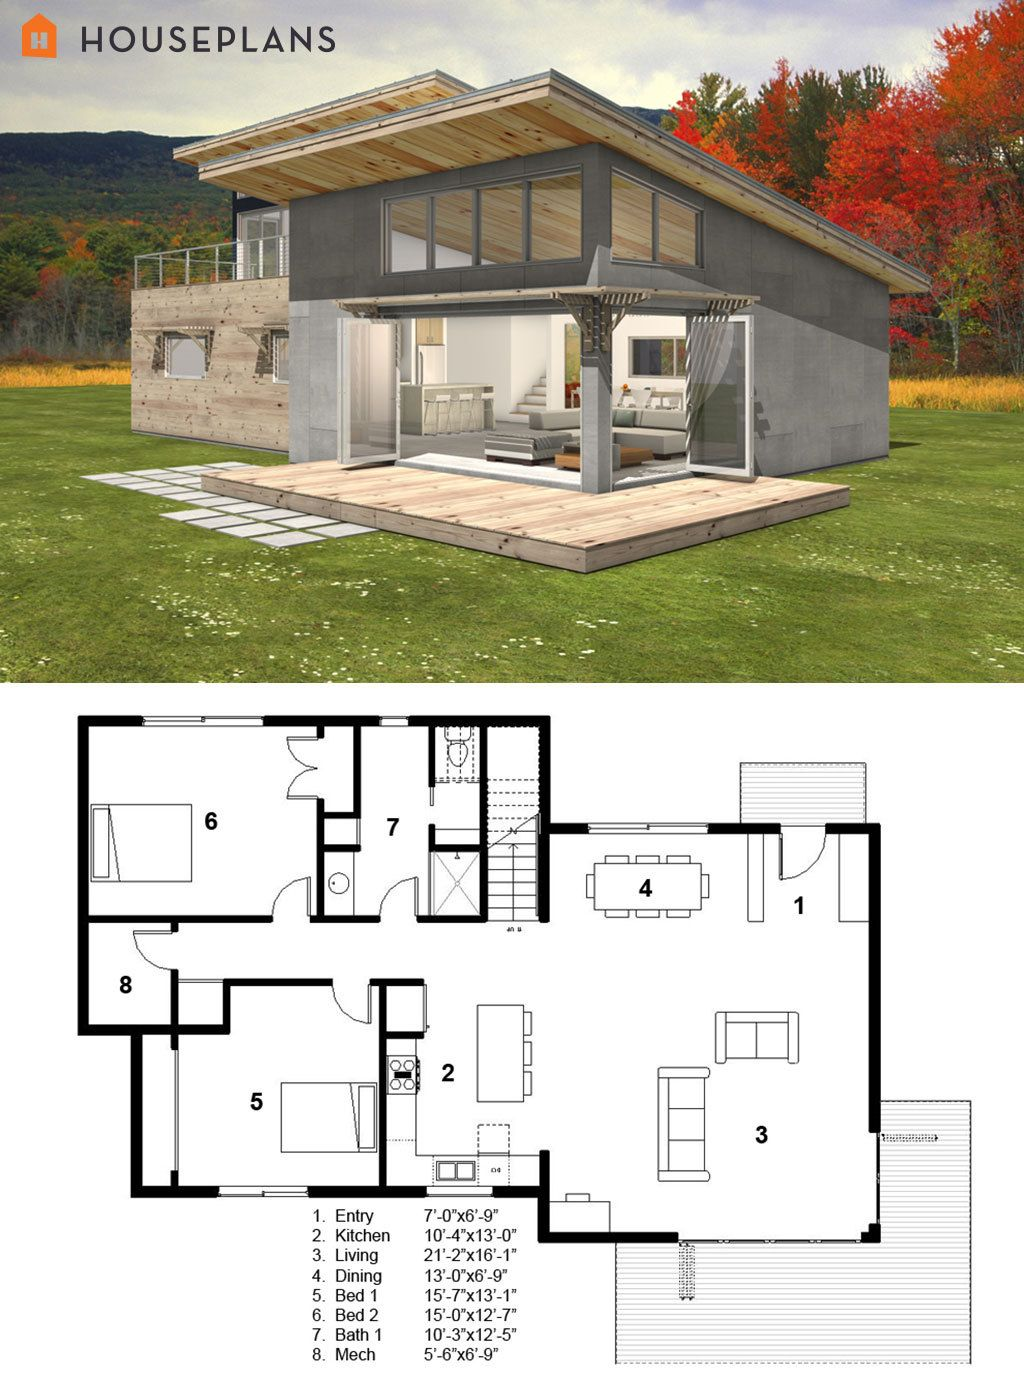 Small modern cabin house plan by freegreen energy for Modern house design plans